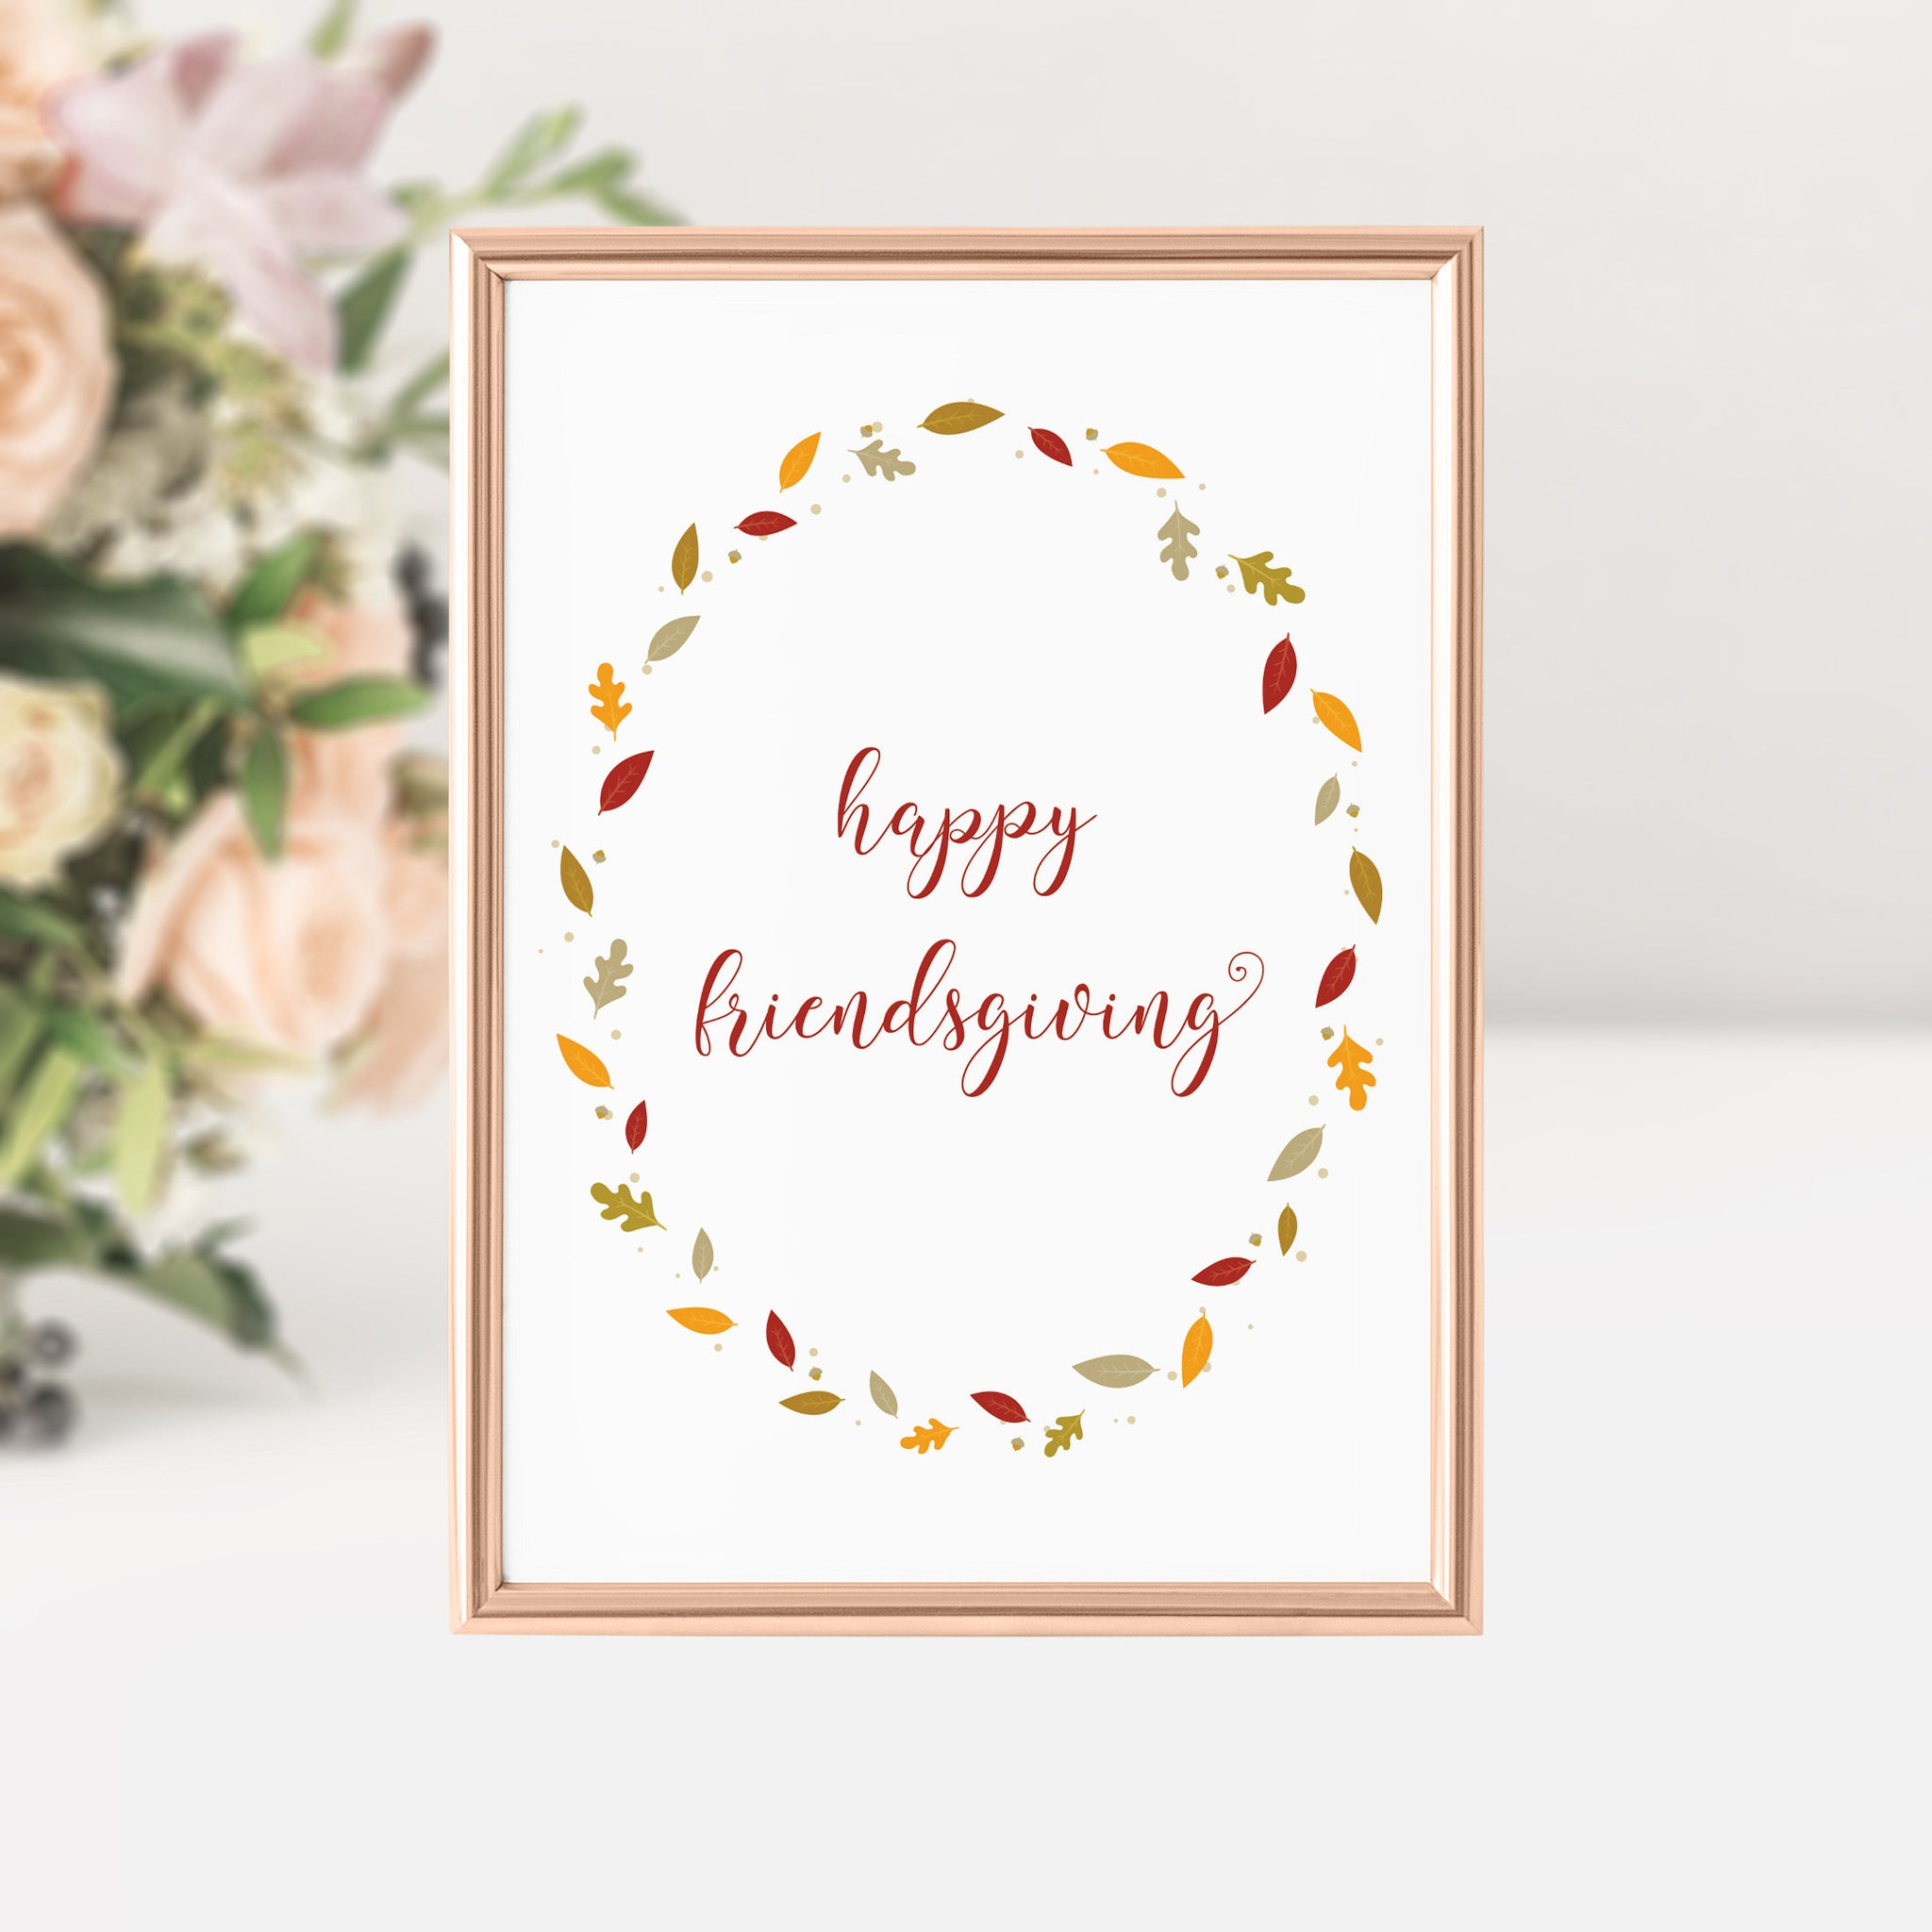 Happy Friendsgiving Sign Printable, Friendsgiving Decor, Friendsgive Sign Printable, INSTANT DOWNLOAD - FL100 - @PlumPolkaDot